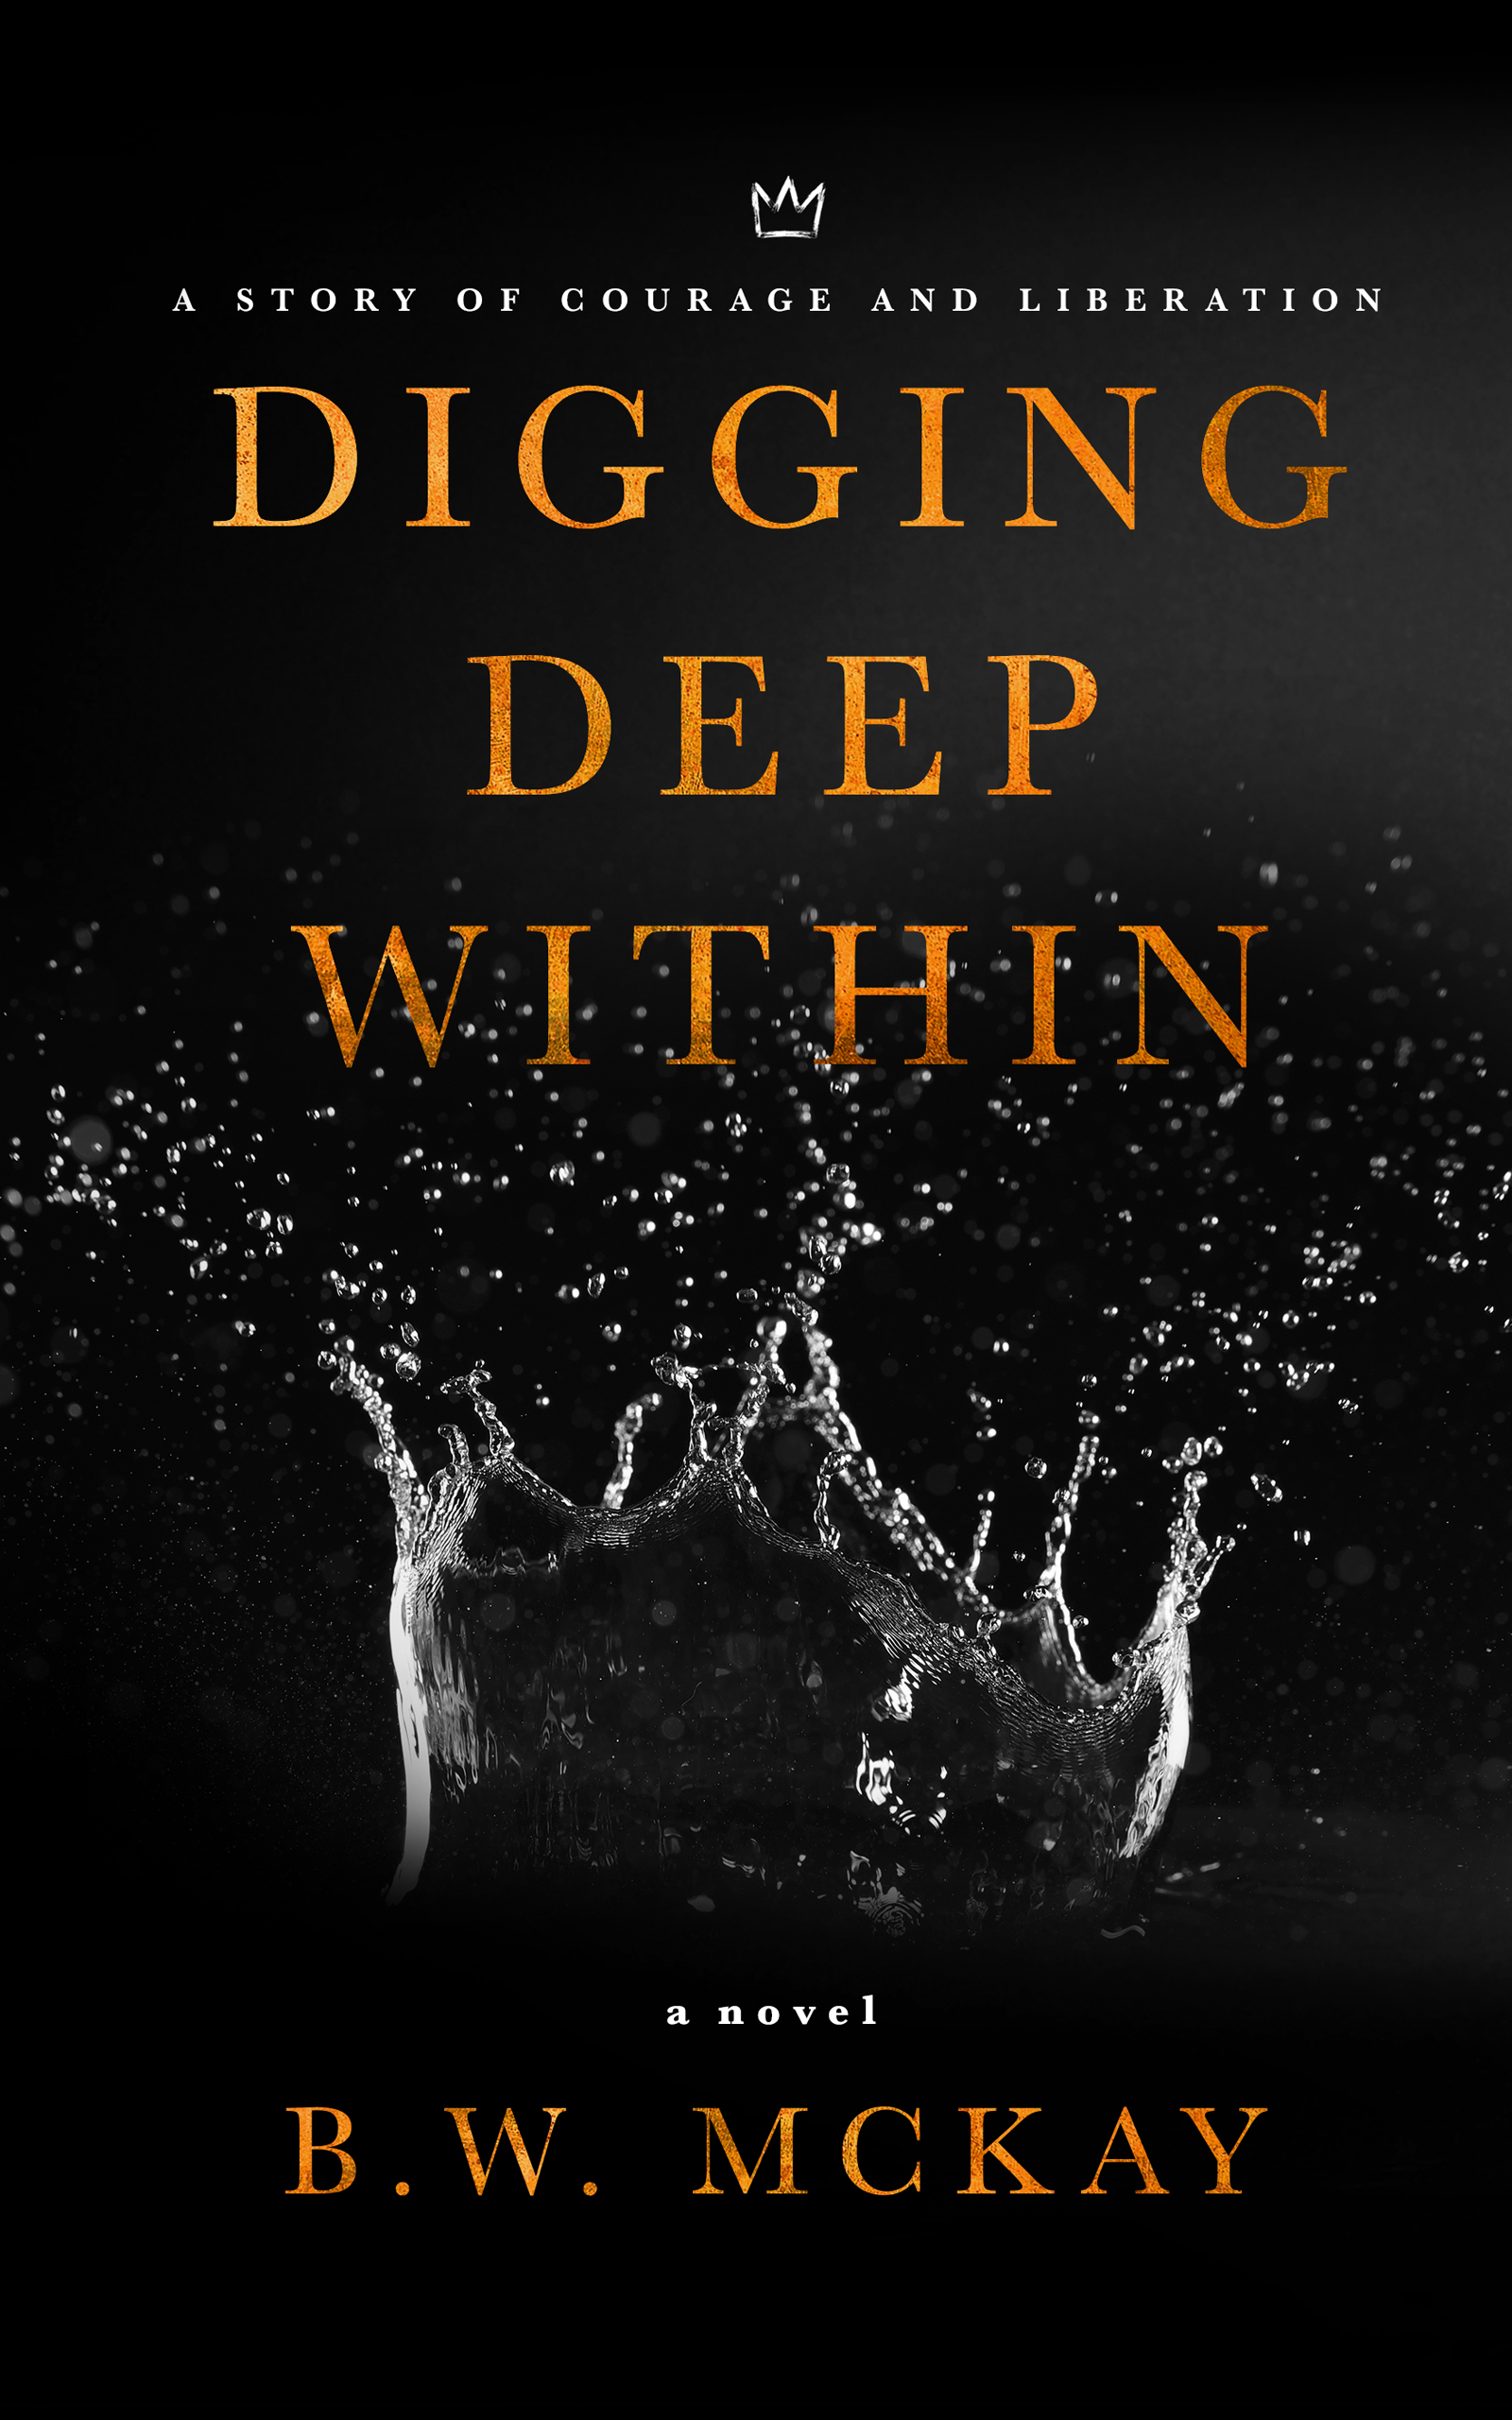 Digging Deep Within: A Story of Courage and Liberation - Corey Brookshire, a young African American man from Washington, D.C. arrives at cross road in his life after the untimely death of his mother Dorothea. From the outside looking in, he appears to have it all but nobody knows the internal struggle that plagues his mind nearly every day.Struggling to make sense of his new reality, Corey tries to use his career and accomplishments as a way to avoid dealing with the uncomfortable truths of his past. Little by little his growing unhappiness and unwillingness to get help begins to affect his life in ways he never imagined.Corey soon finds himself navigating through the uncharted territory of an unfulfilling but promising career, new marriage and a barrage of buried unresolved pain. He unintentionally embarks on a journey of self-discovery where he must confront the toils of brokenness, mental anguish and the male stigma of seeking help if he is to find the freedom he so earnestly desires.Click here to purchase